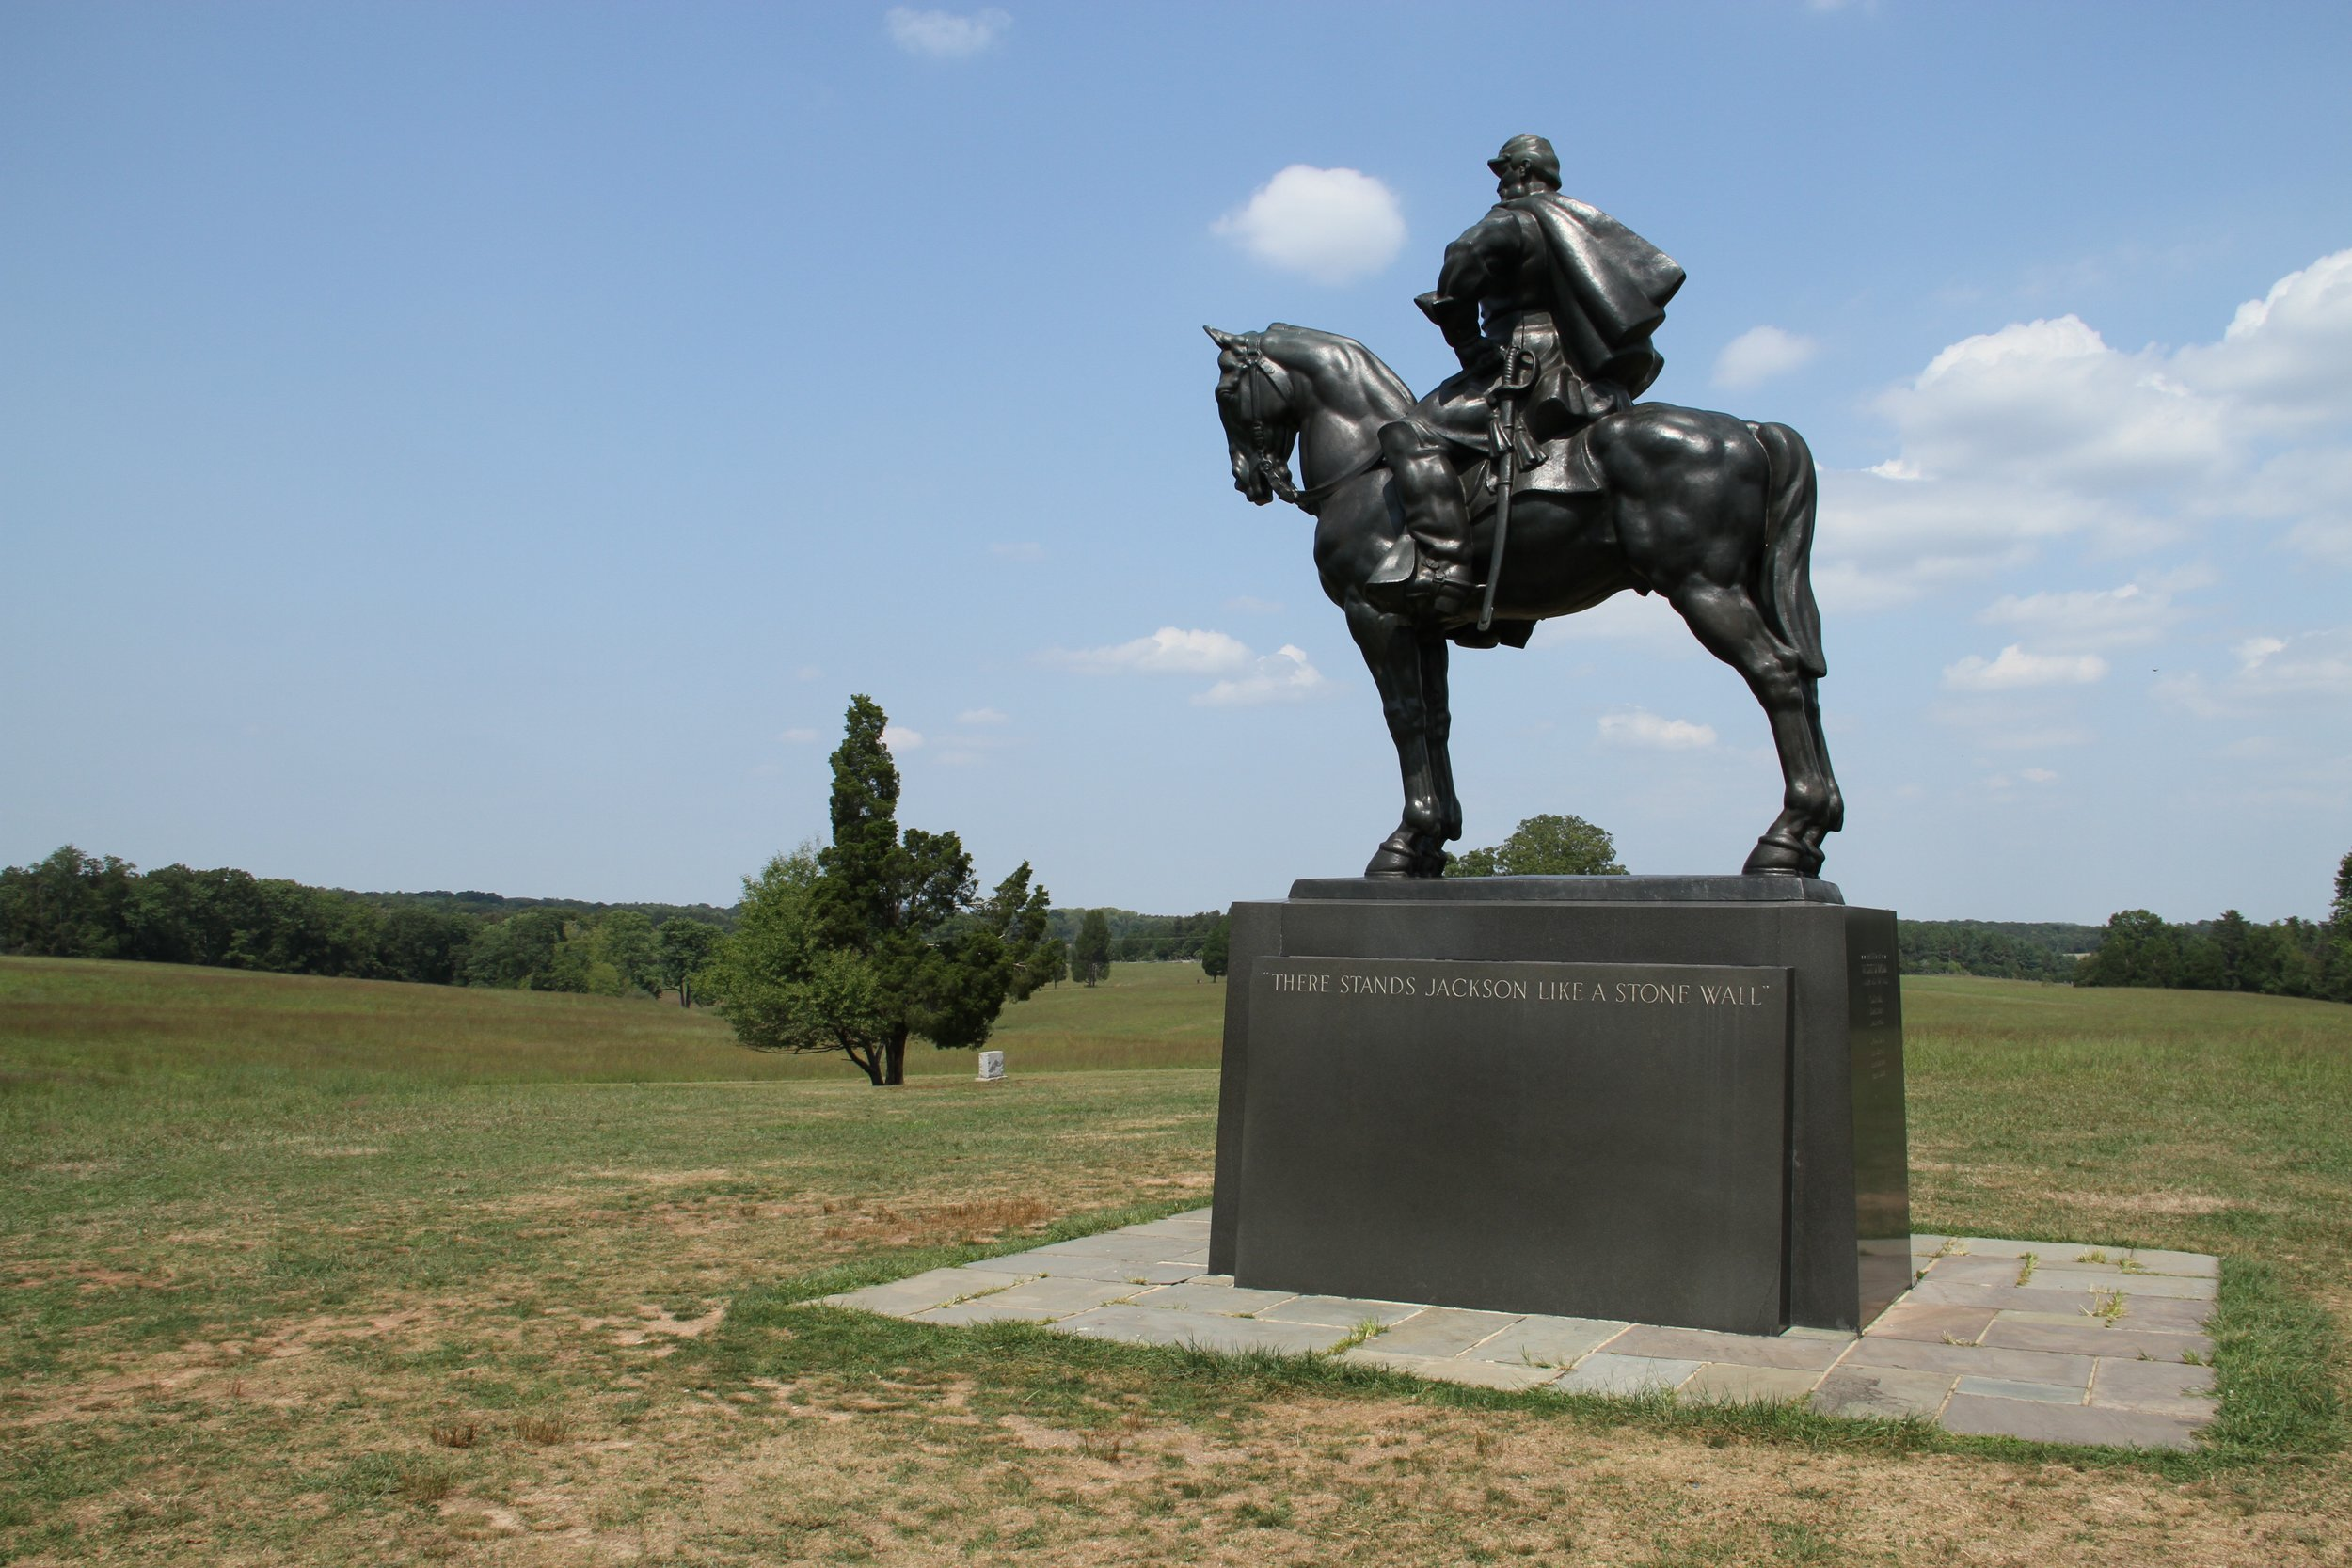 First Manassas - Experience the first great battle of the Civil War along the banks of Bull Run. Mixture walking & driving. Approximately 3 Hours.